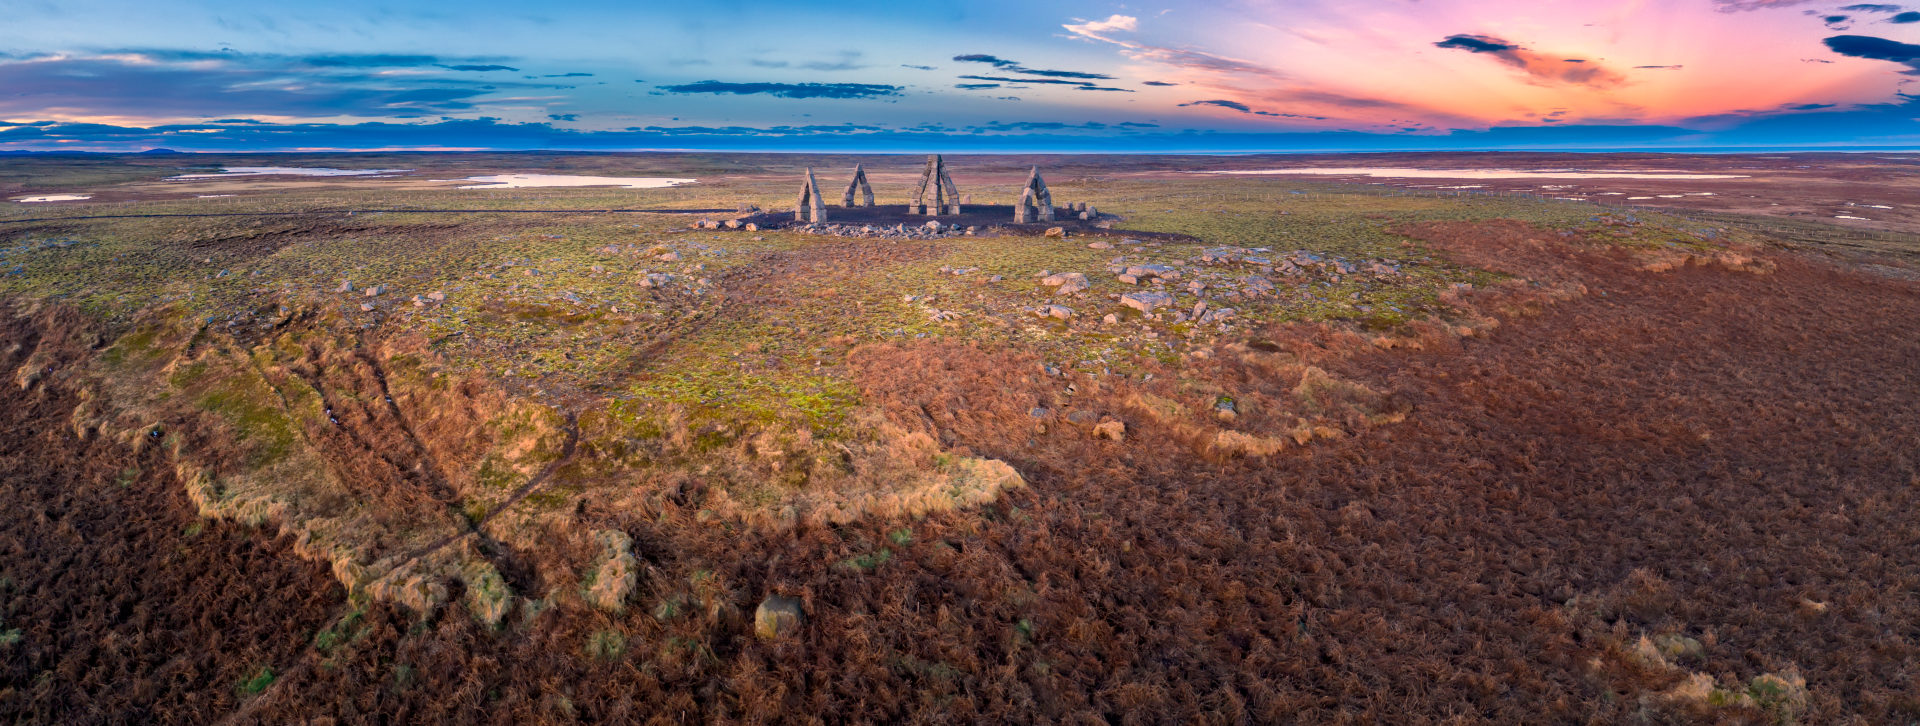 The Arctic Henge, (Heimskautsgerdi), inspired by Stonehenge, a huge sundial in a remote northern eastern village, Raufarhofn, Iceland